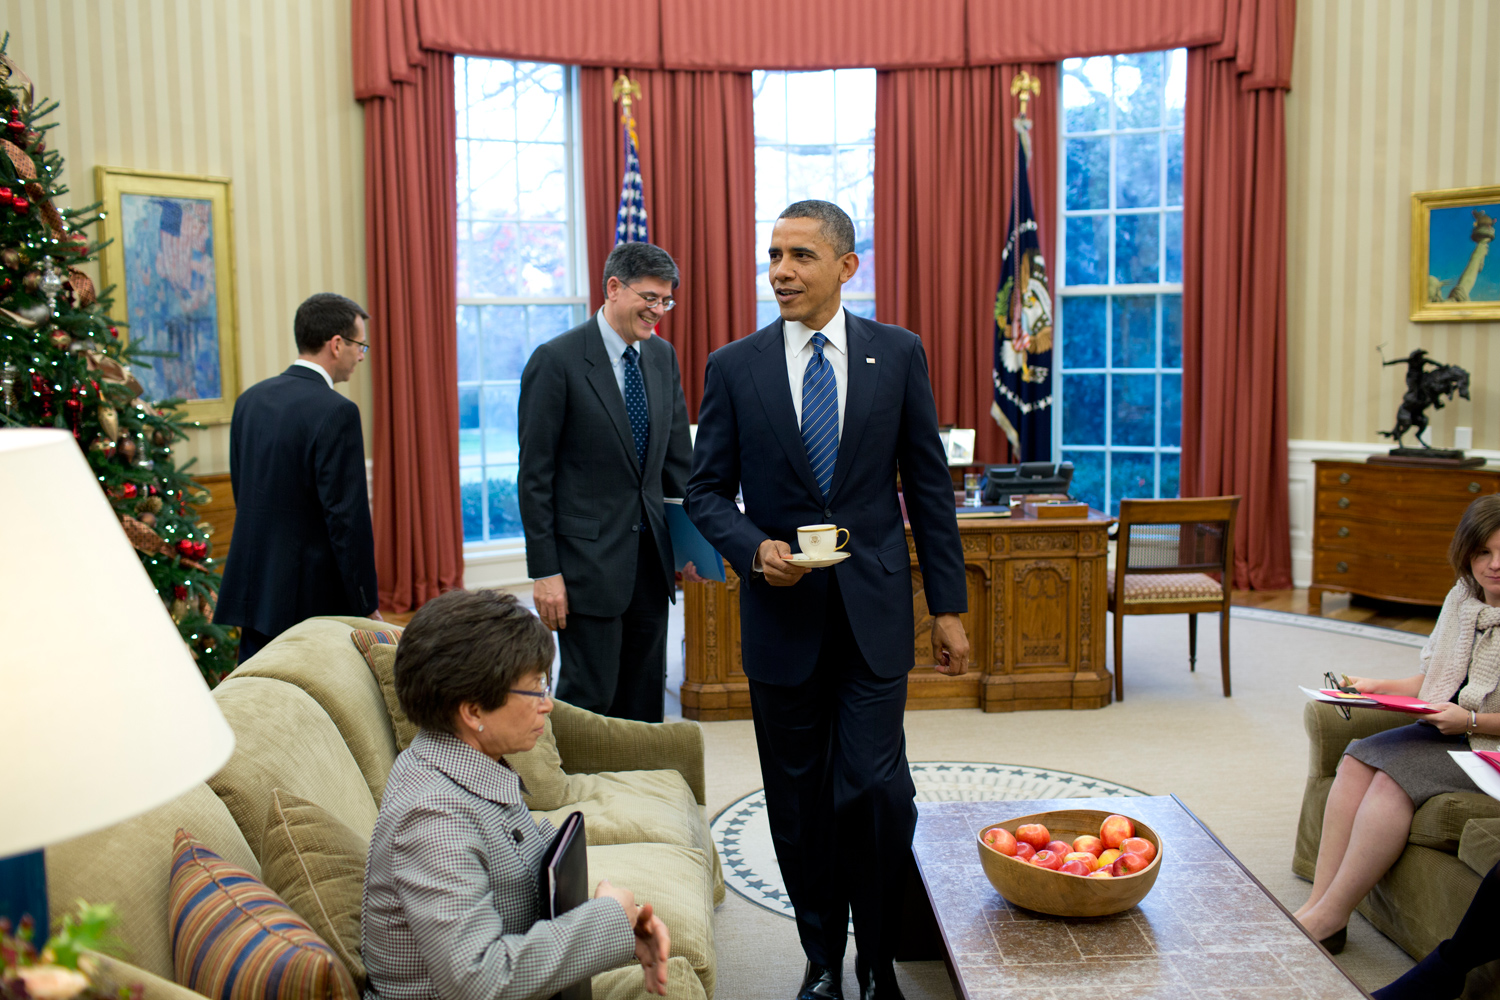 The President carries his tea before a senior staff briefing in the Oval Office.